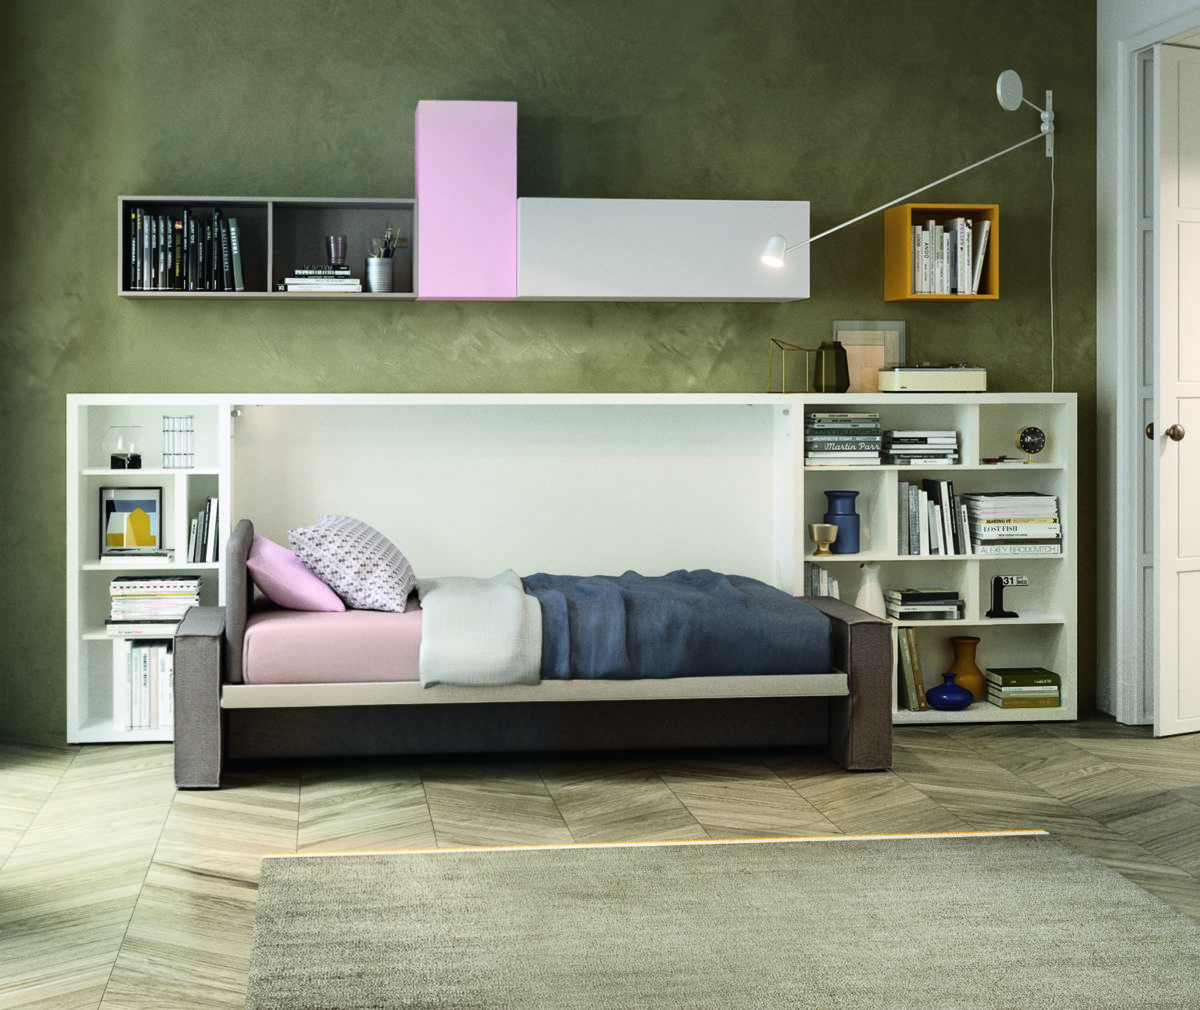 Sleeper Sofa or Murphy Bed?